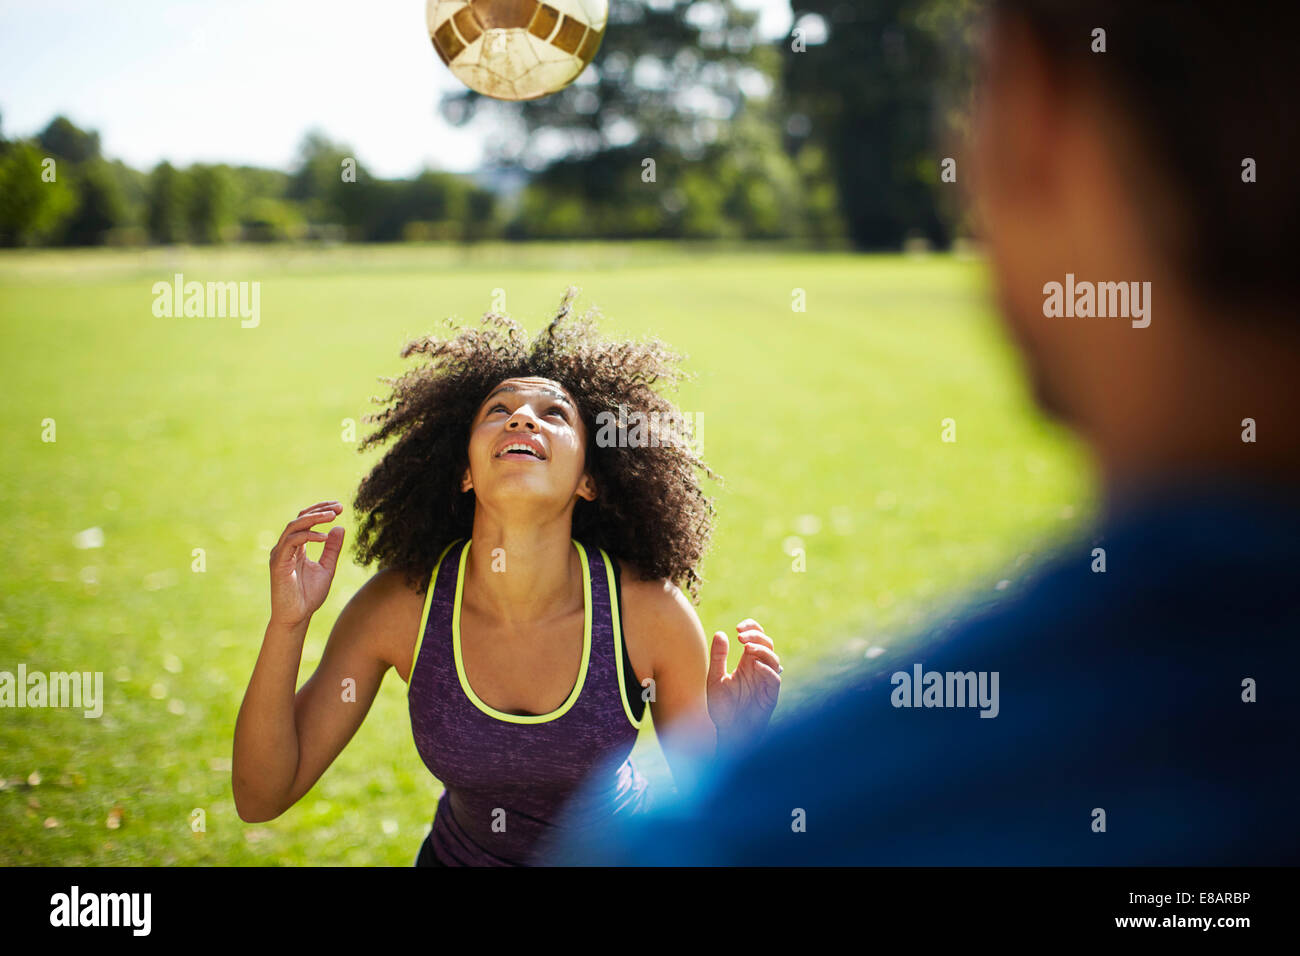 Young woman heading football in park - Stock Image